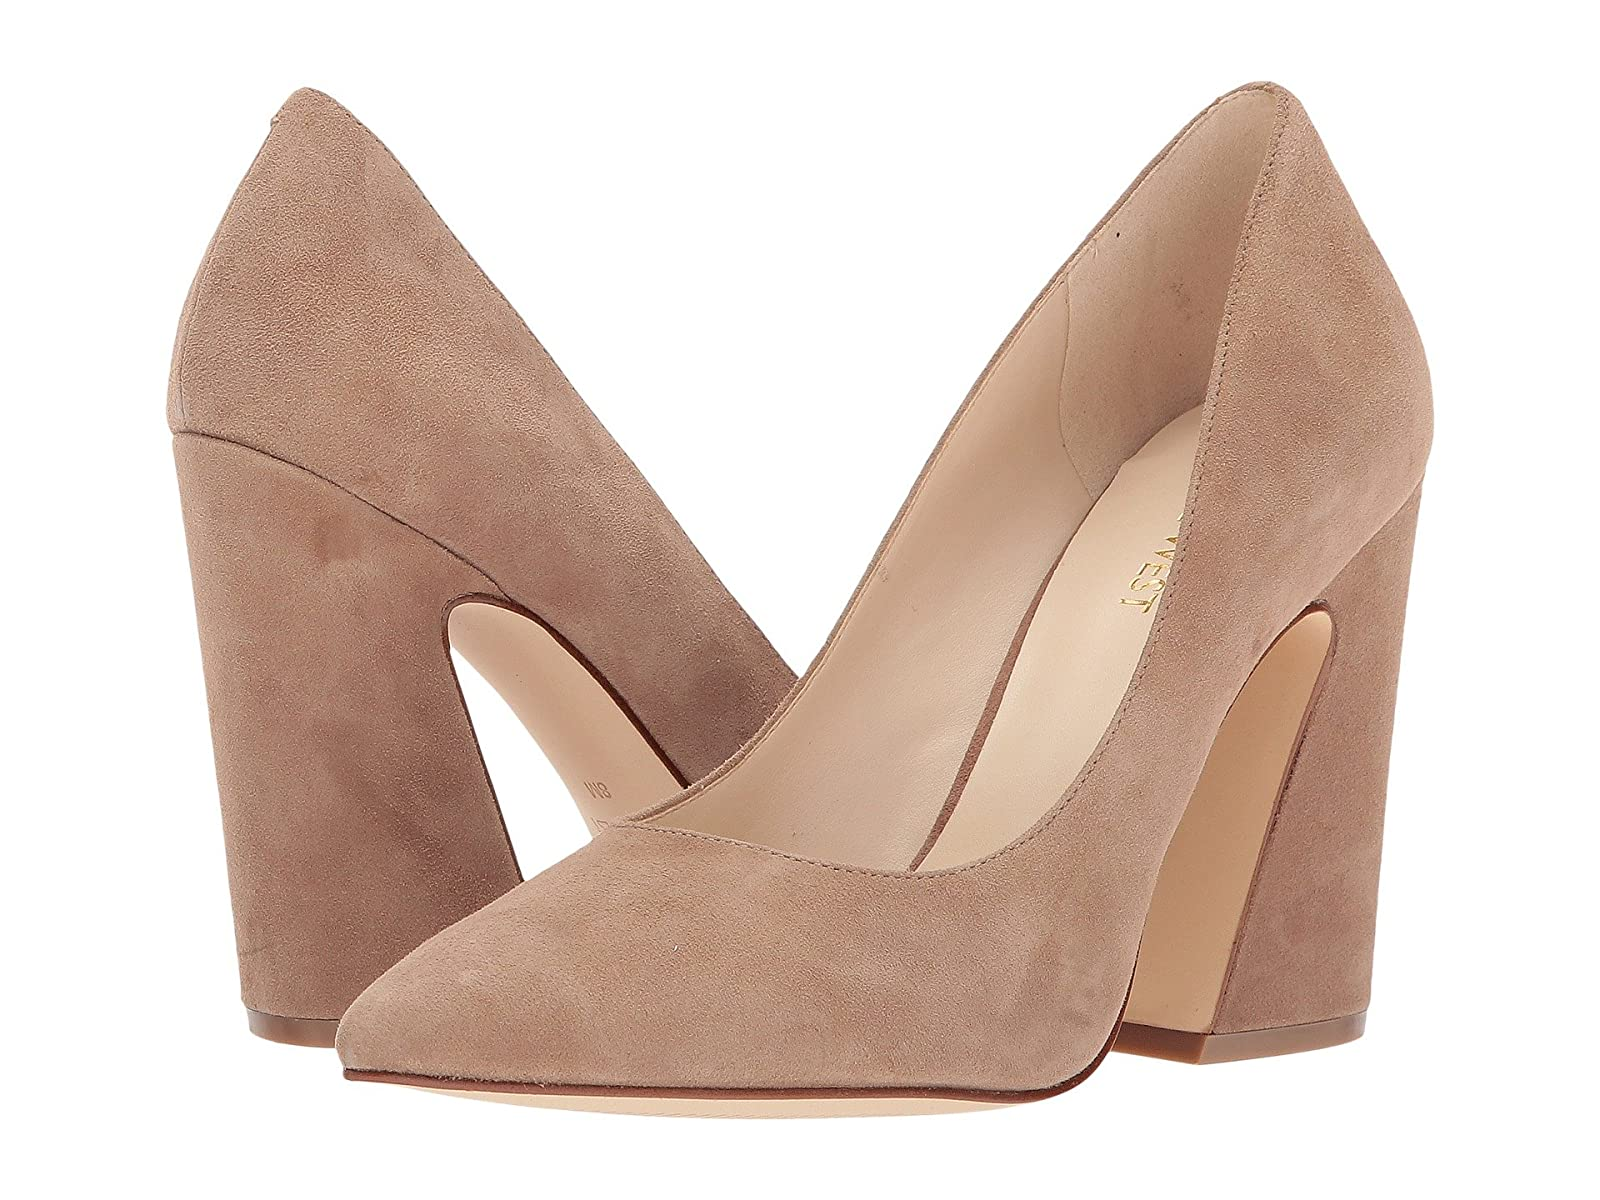 Nine West Henra Block Heel SandalCheap and distinctive eye-catching shoes